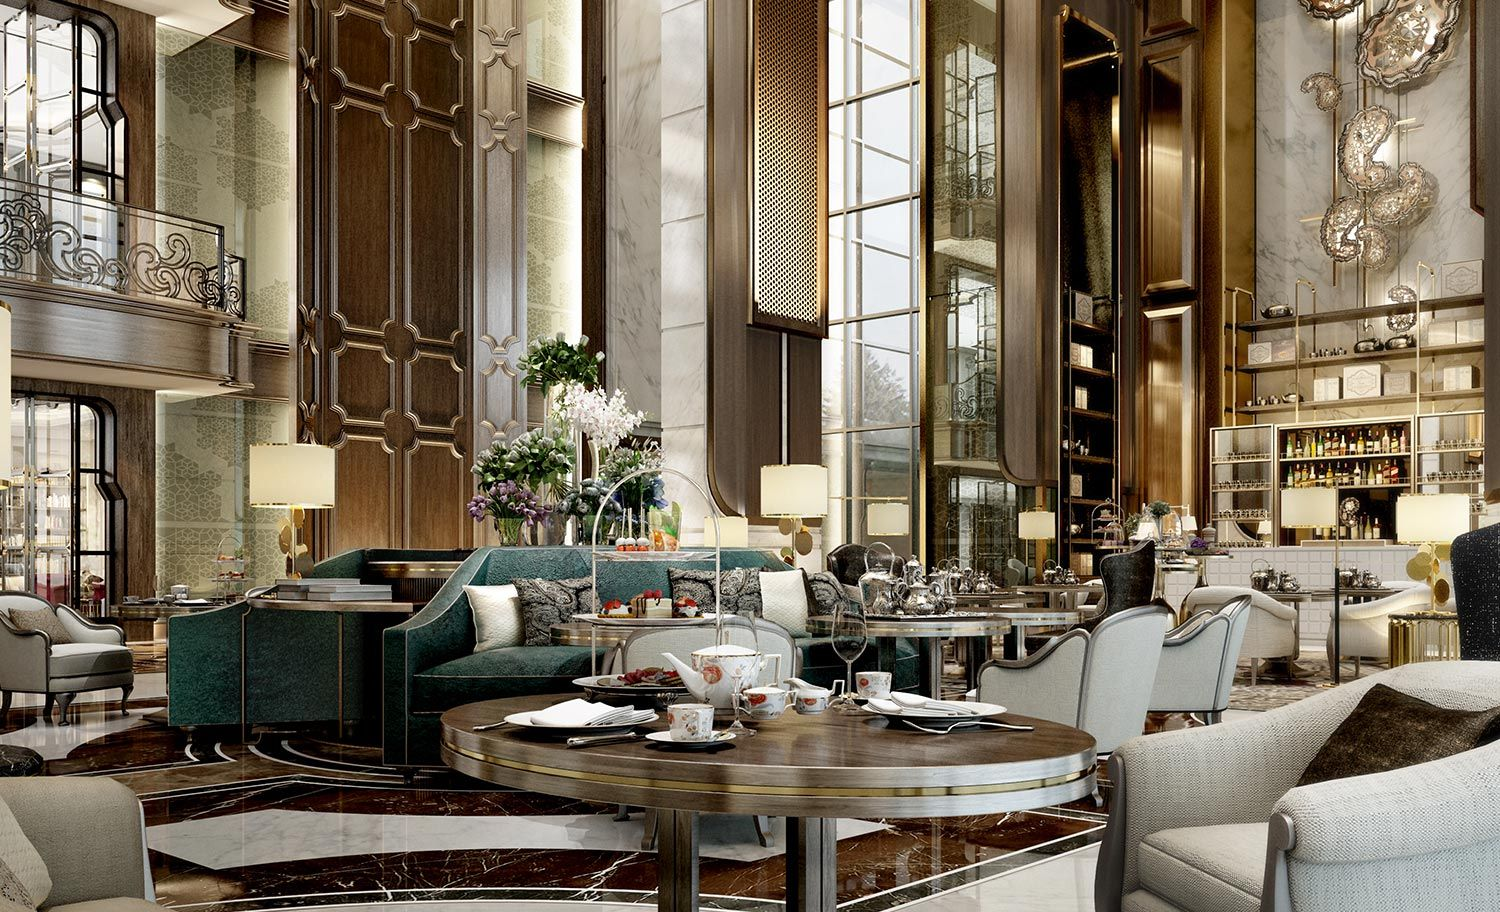 The Ritz Carlton Pune Panchshil Realty Interior Design Salary Minimal Interior Design Interior Design Colleges